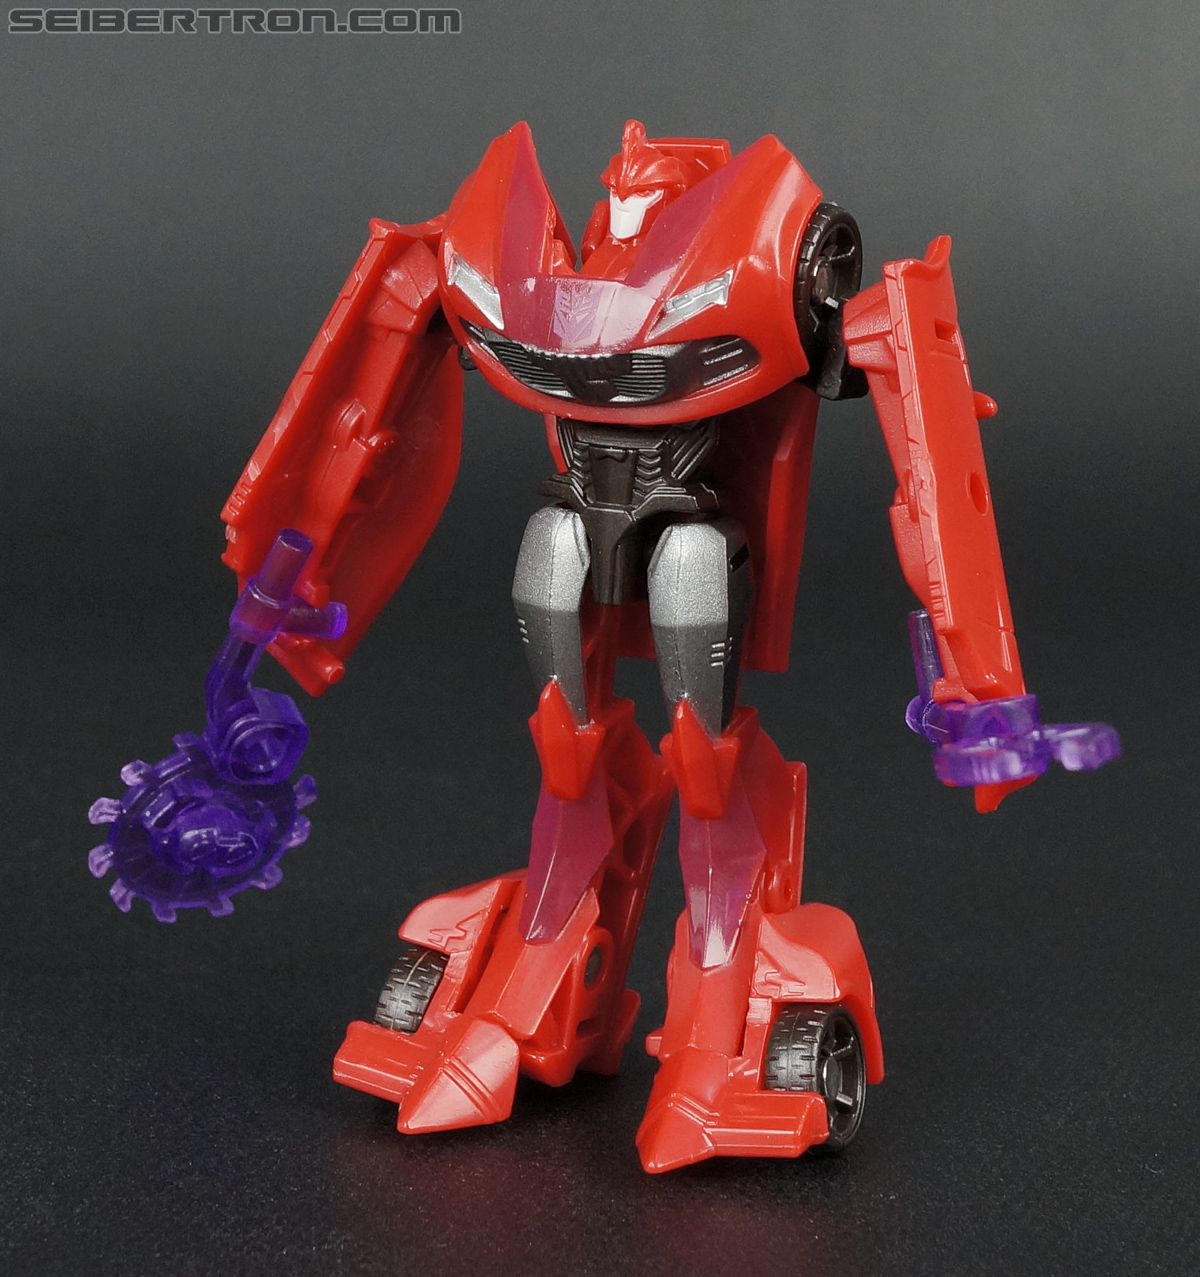 Transformers Prime: Cyberverse Knock Out (Image #89 of 146)